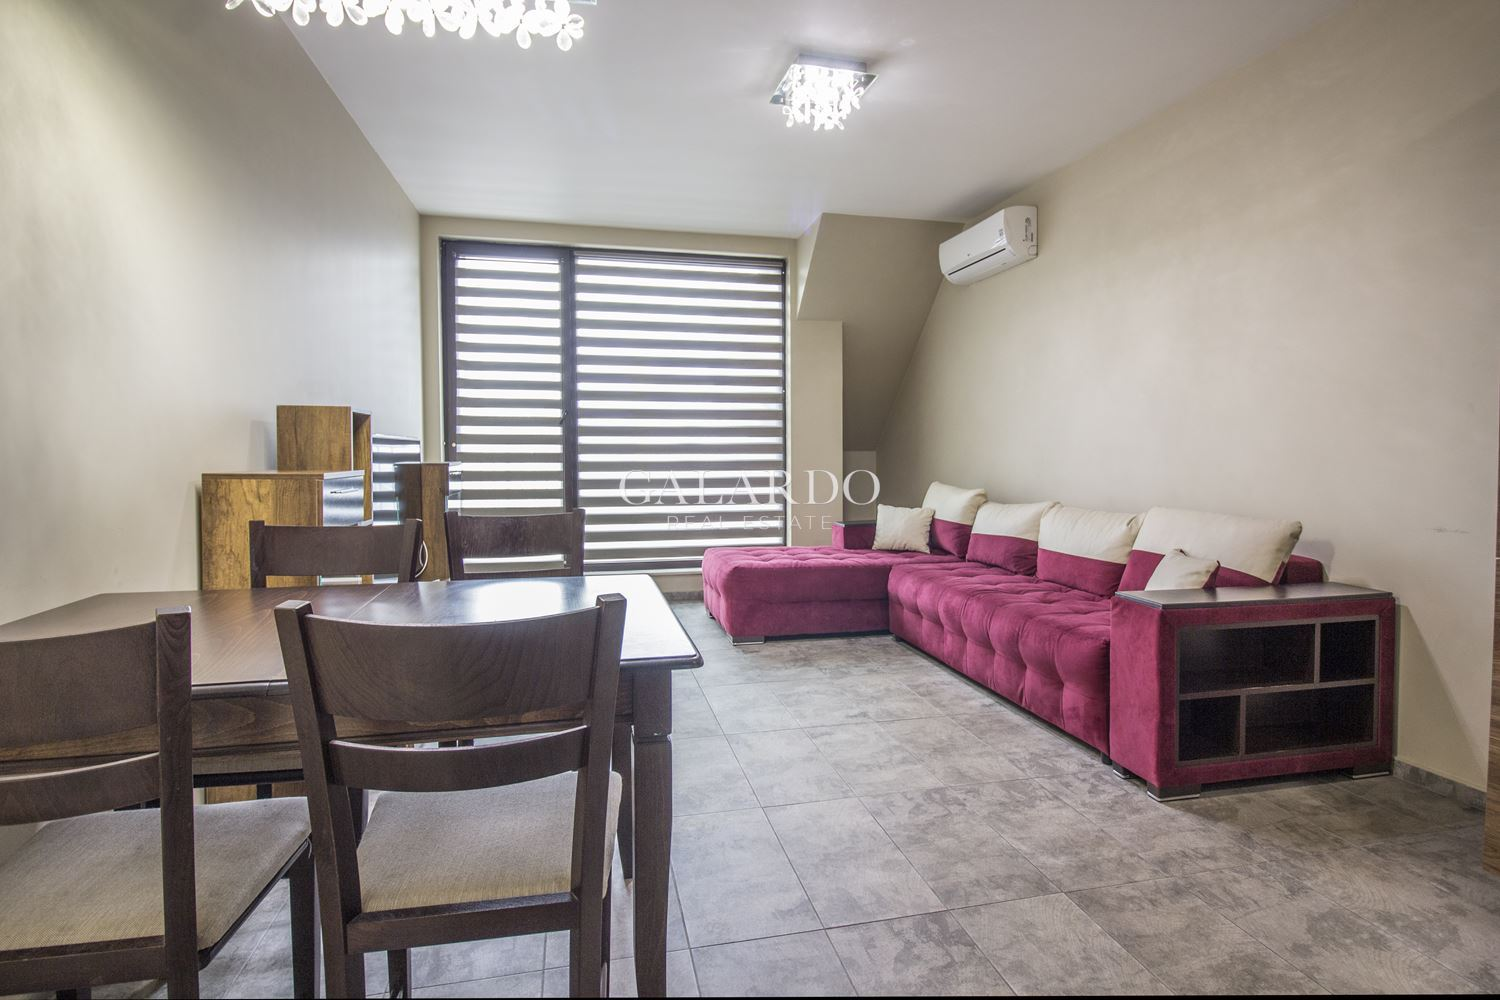 Furnished luxury apartment in the heart of Sofia. The apartment is for rent fully furnished and equipped.